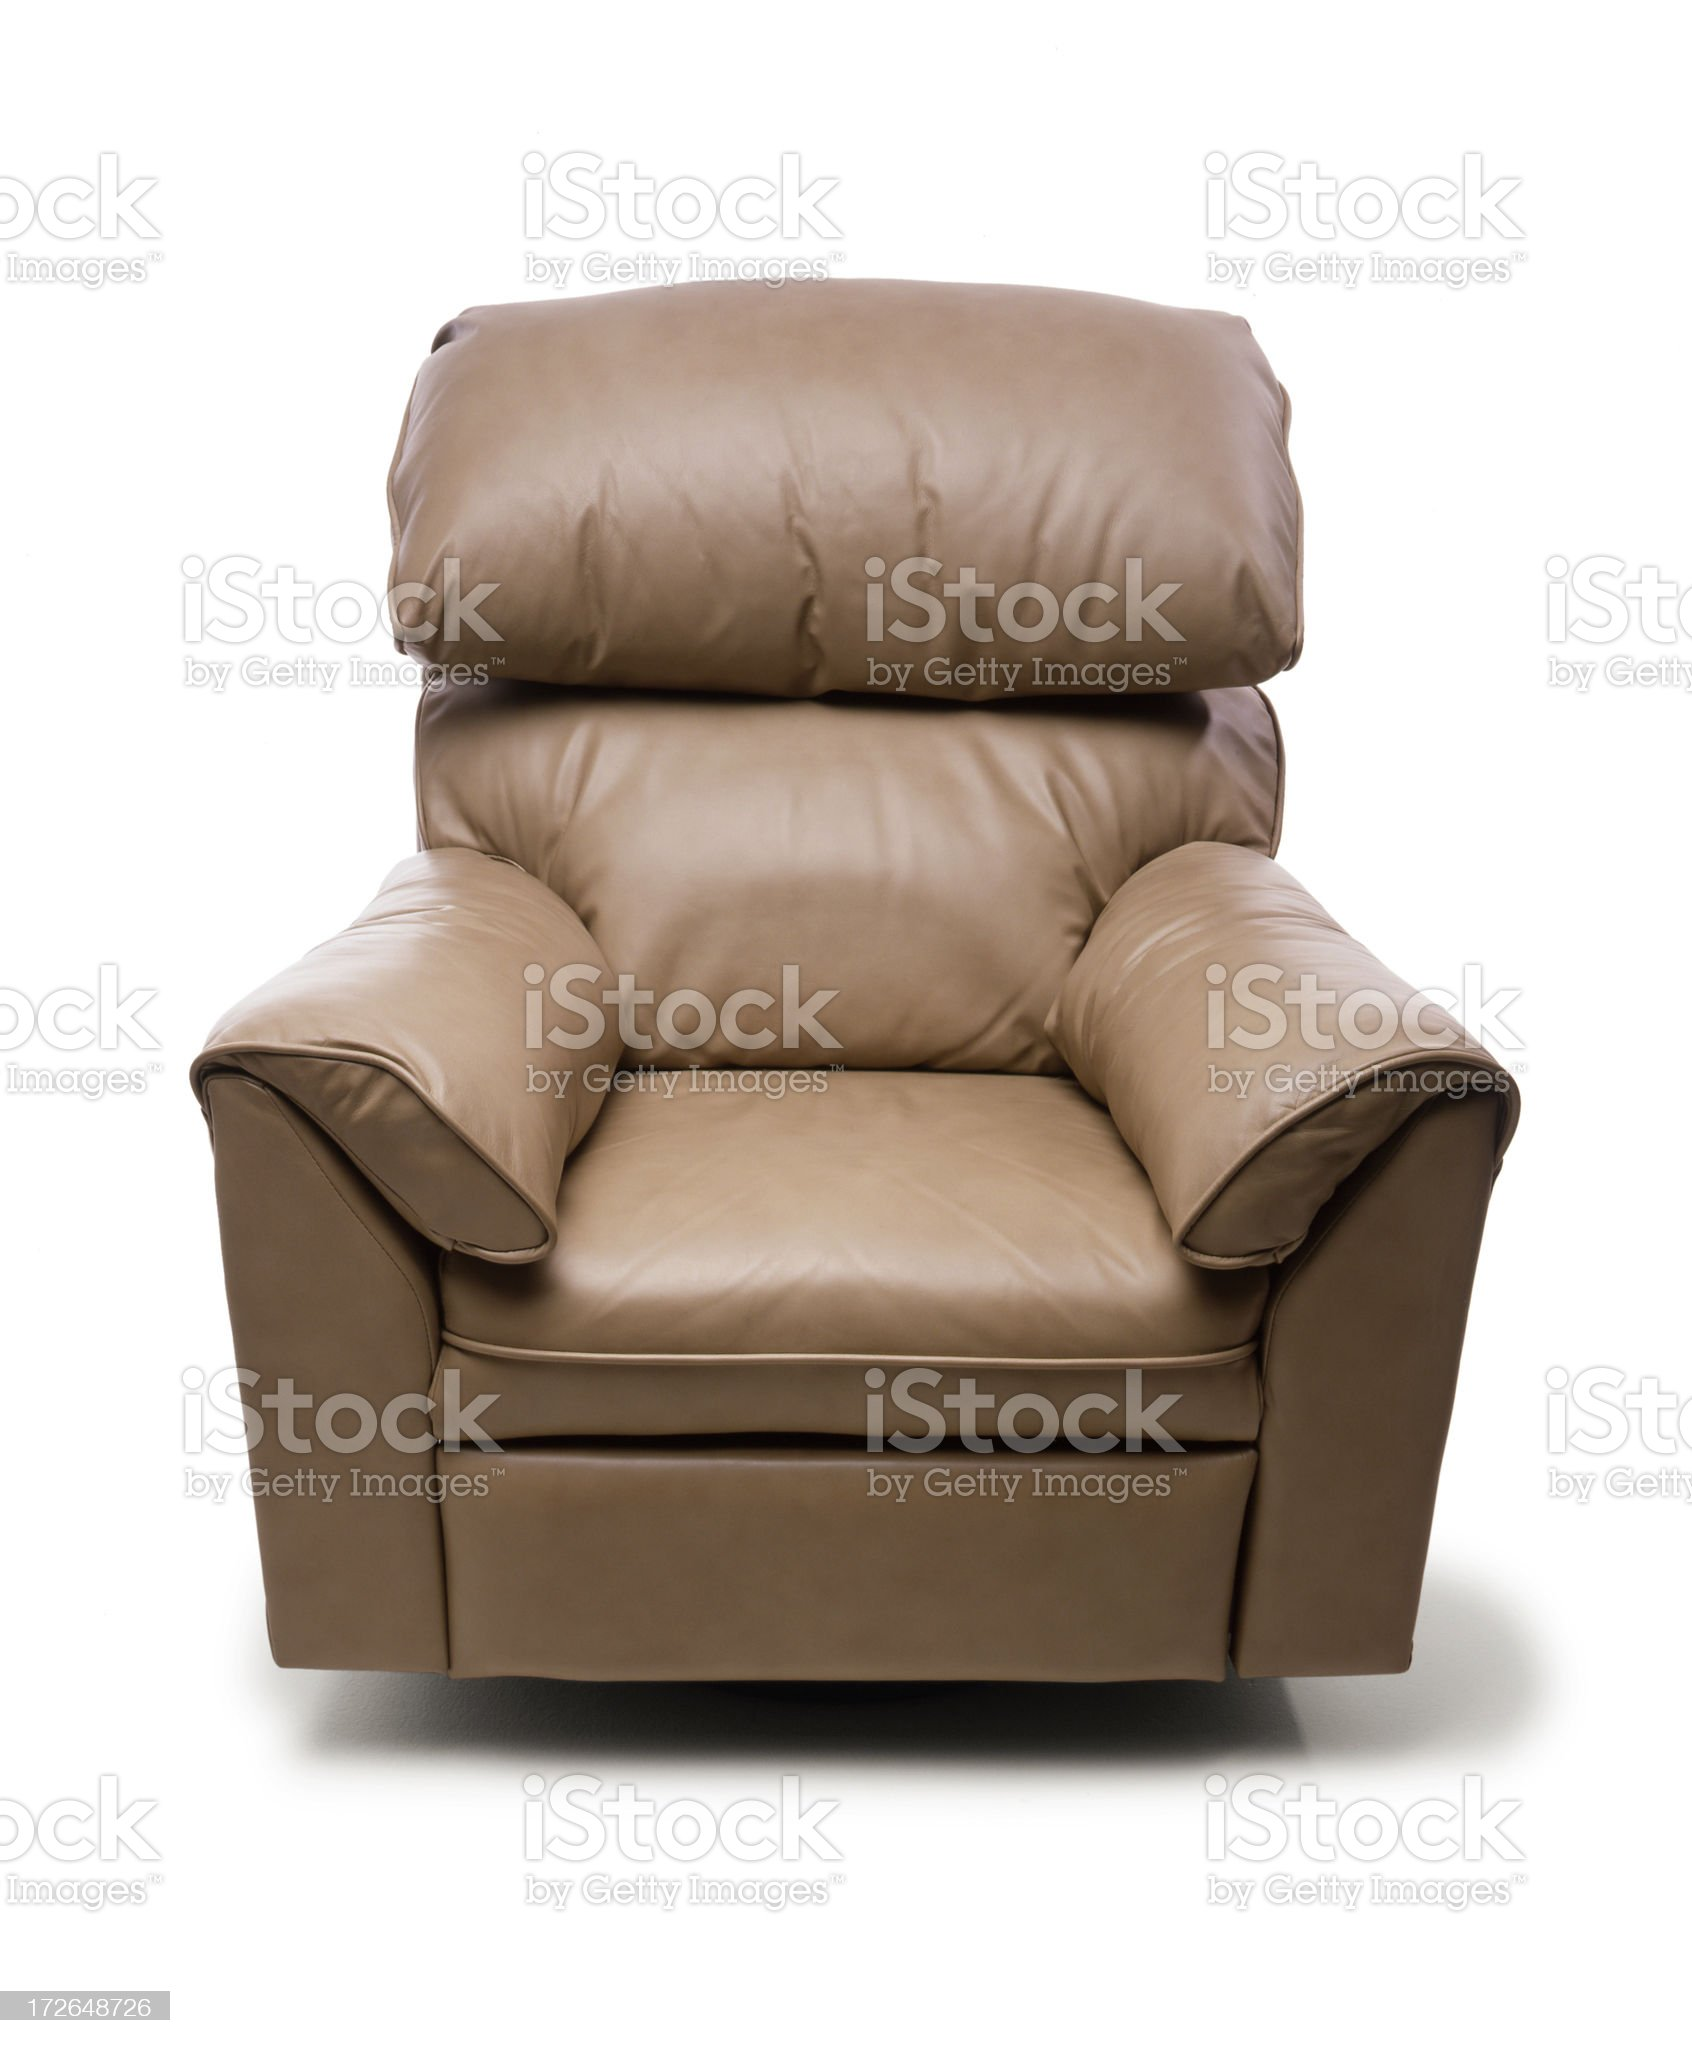 Lounge Chair royalty-free stock photo